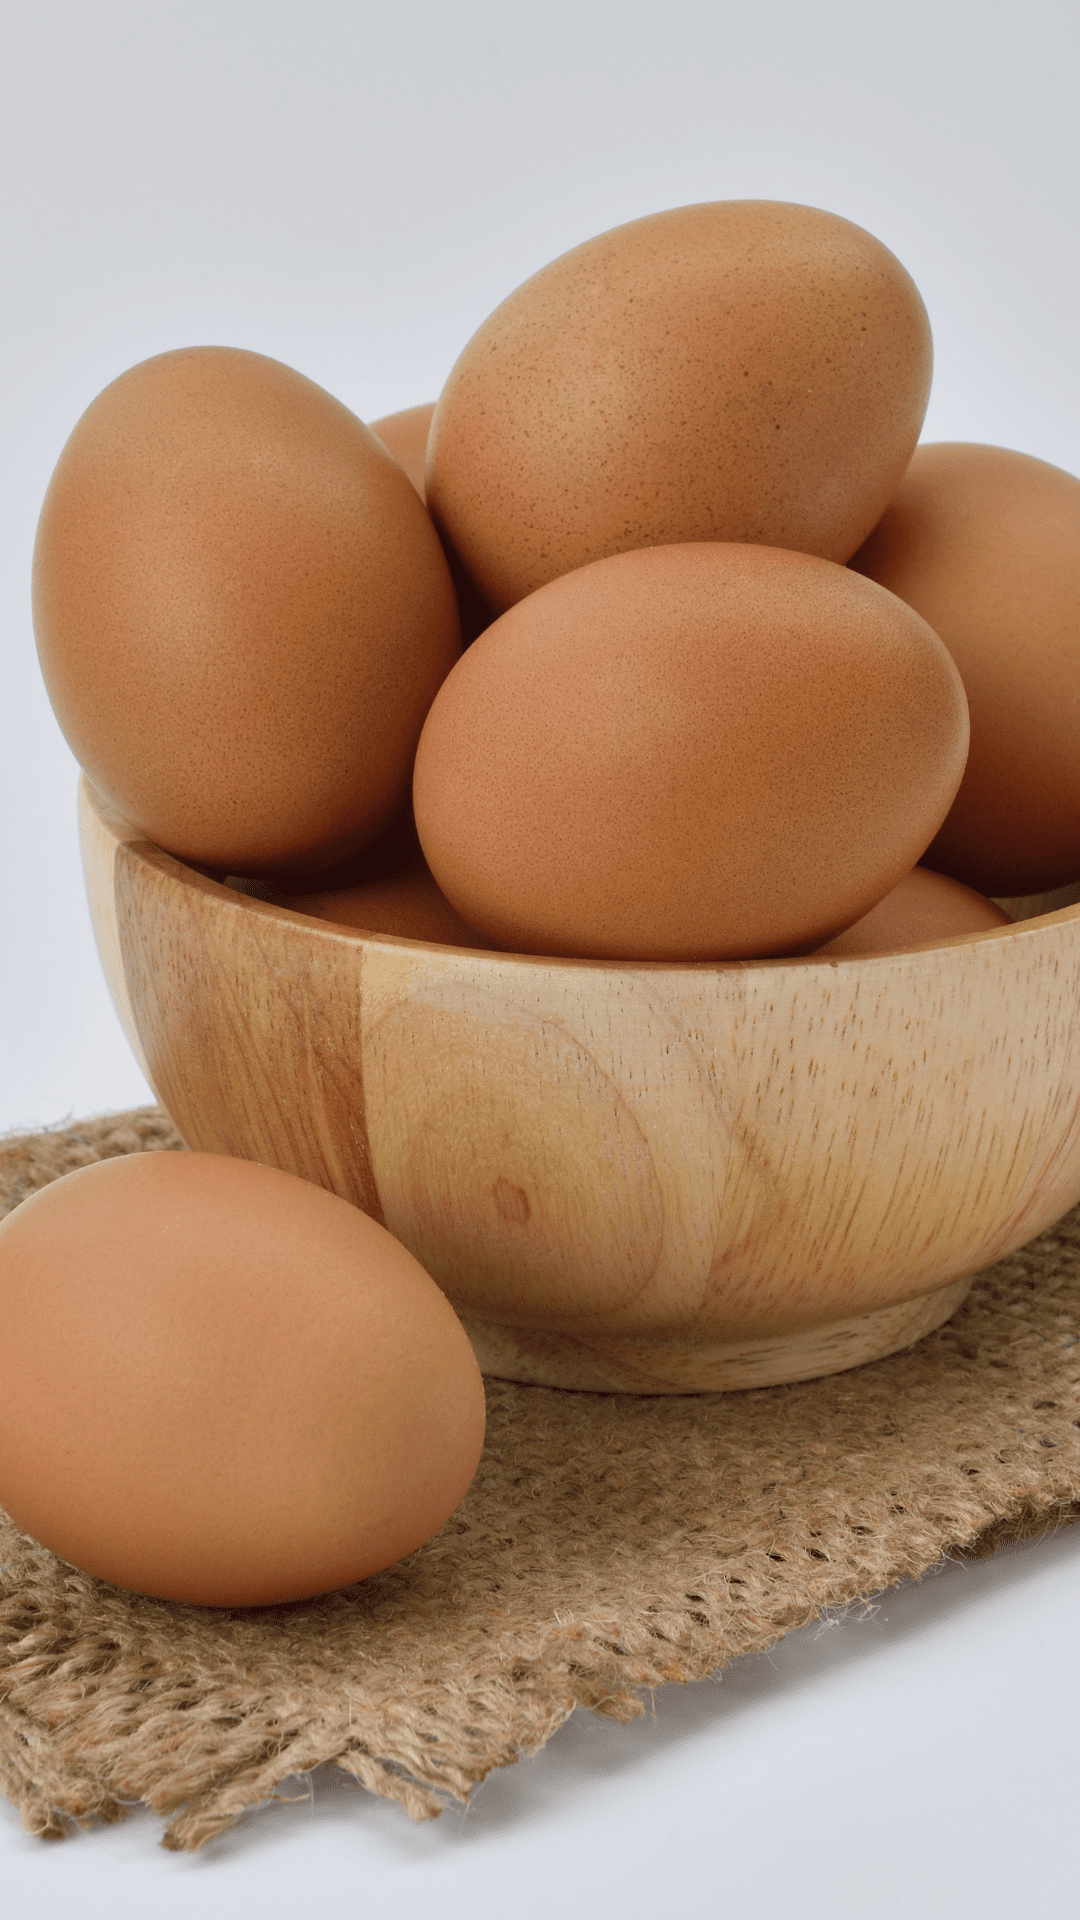 Eating eggs is recommended for the health of your transplant